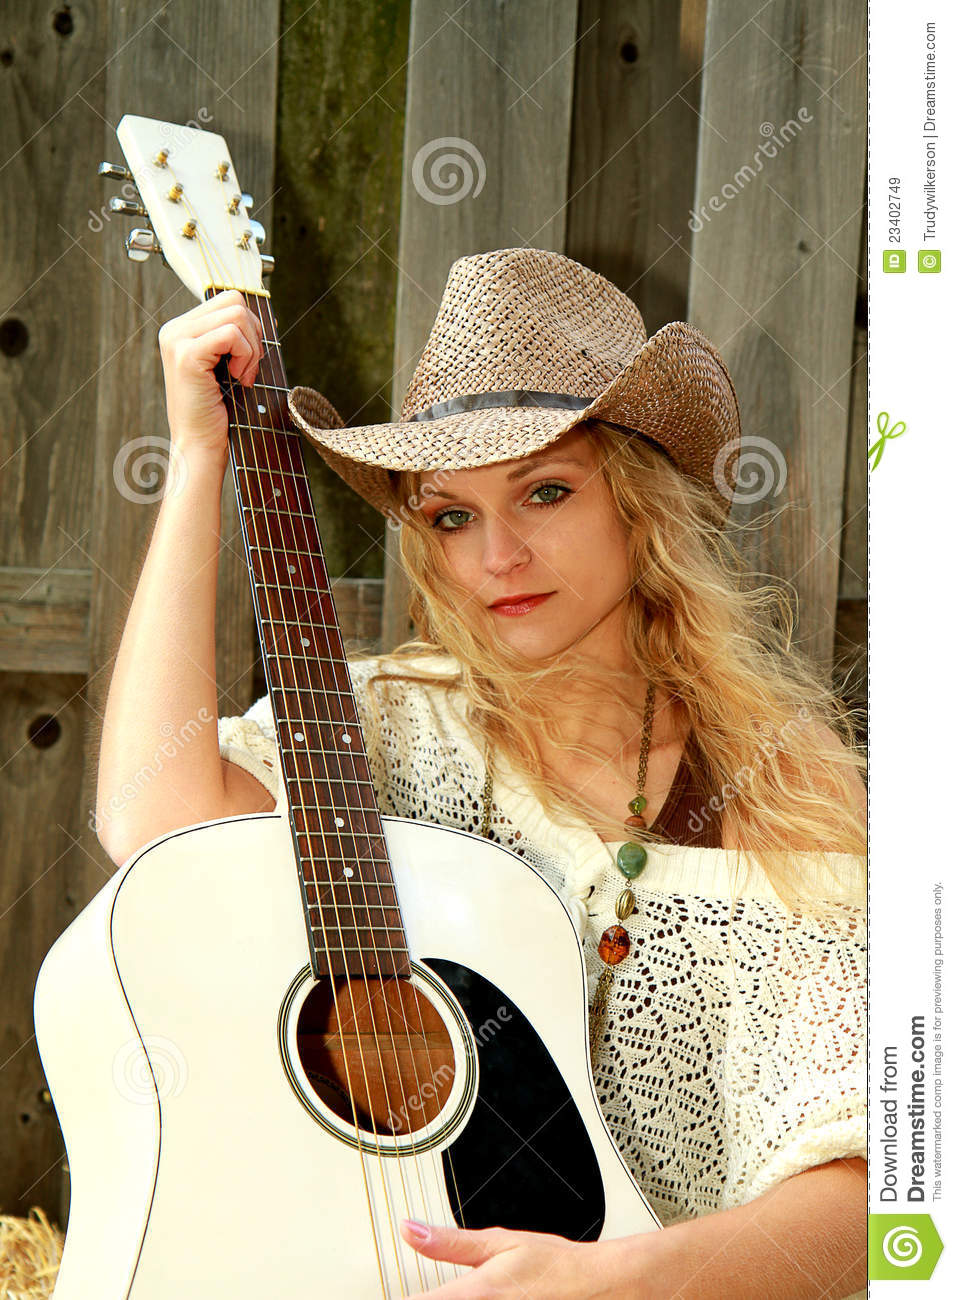 Guitar Girl Wallpaper Hd Cowgirl And Guitar Stock Image Image Of Weave Hair